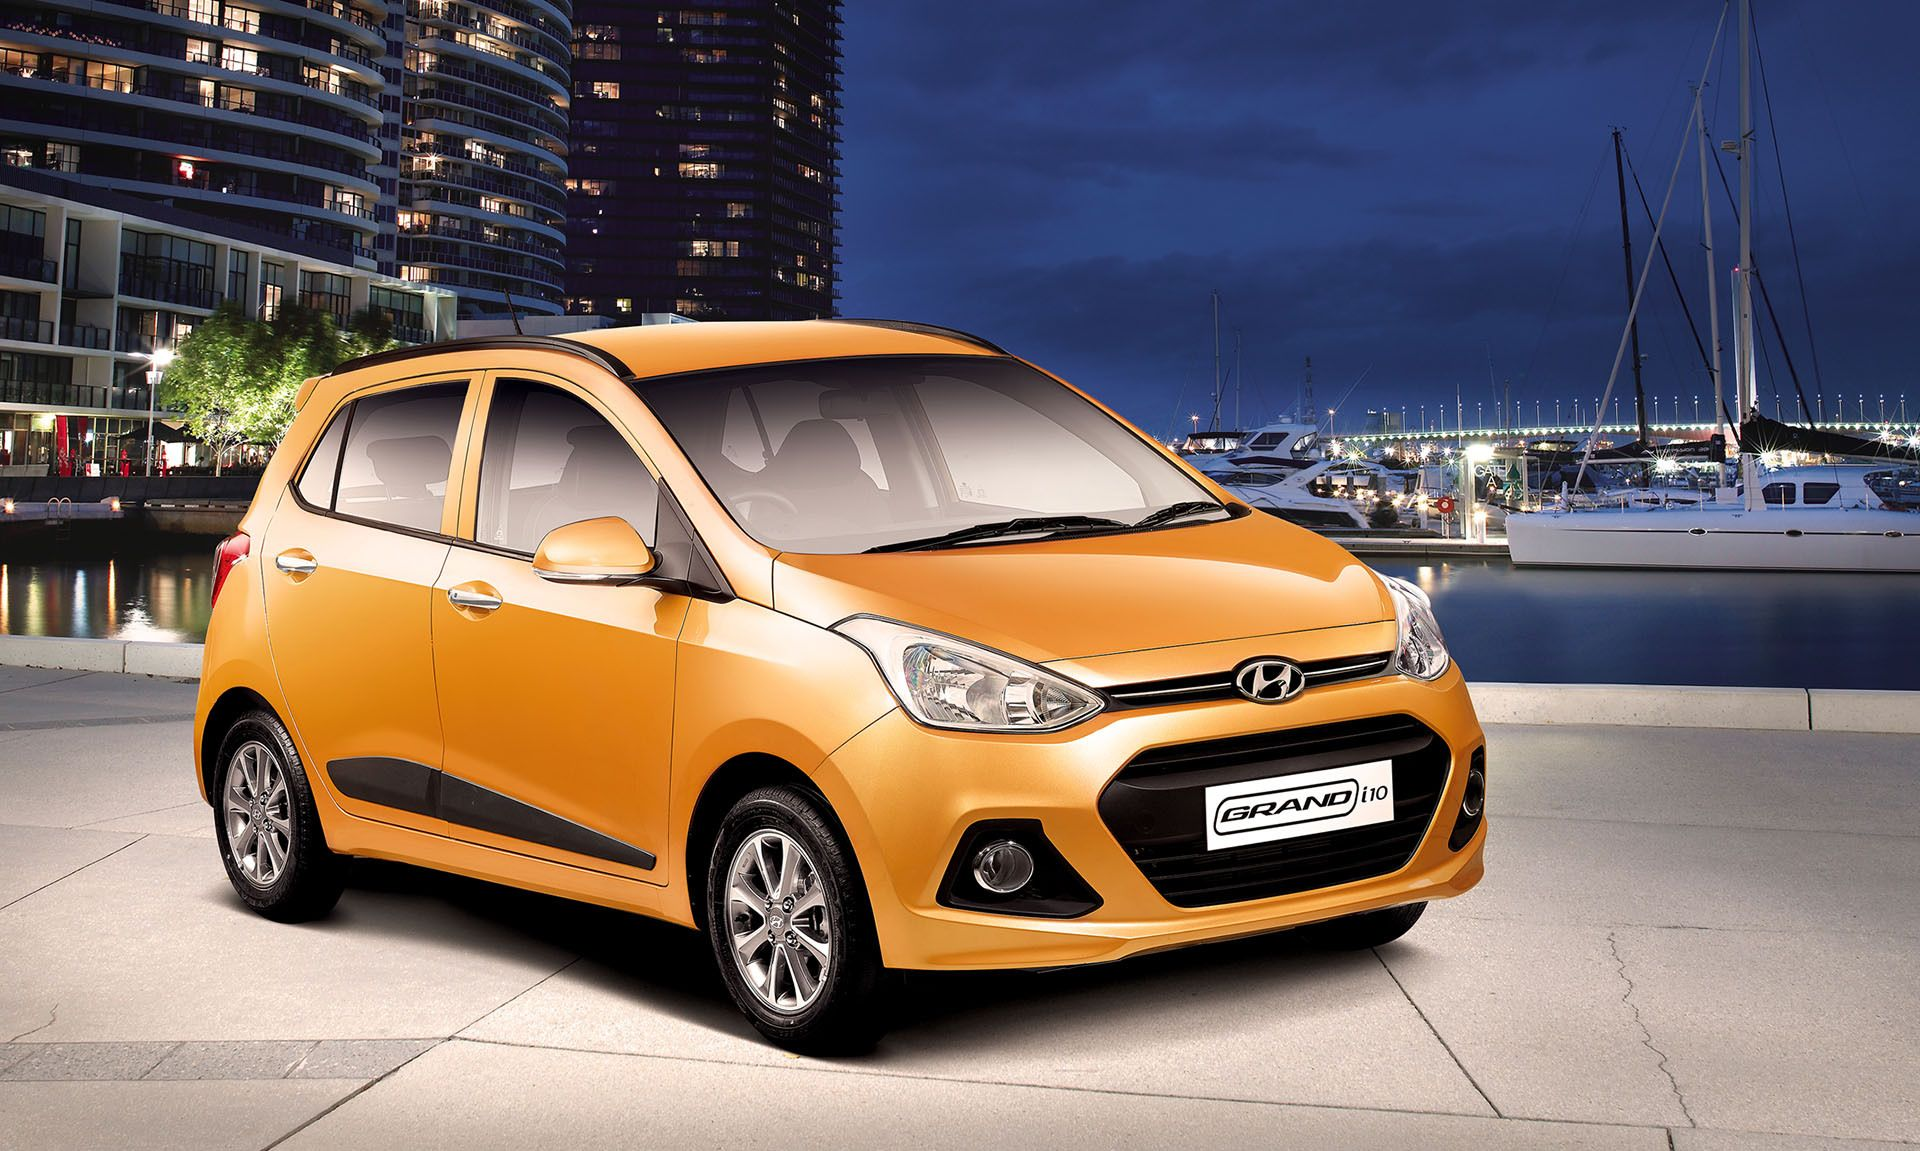 Hyundai Grand I10 2015 Photos Images And Wallpapers Mouthshut